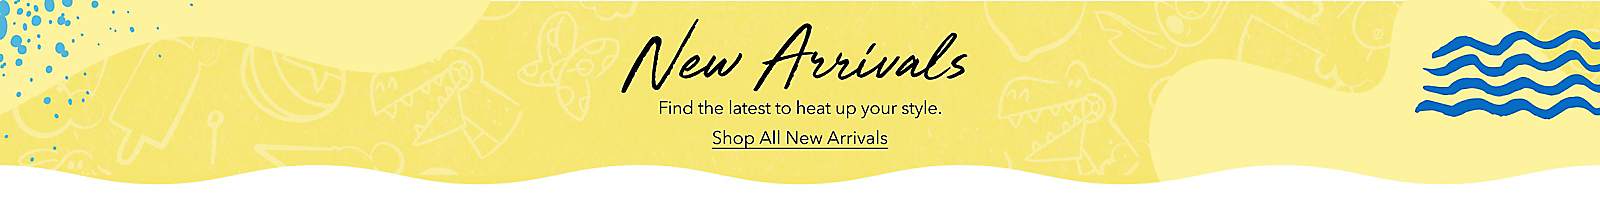 Find the latest to heat up your style. Shop All New Arrivals